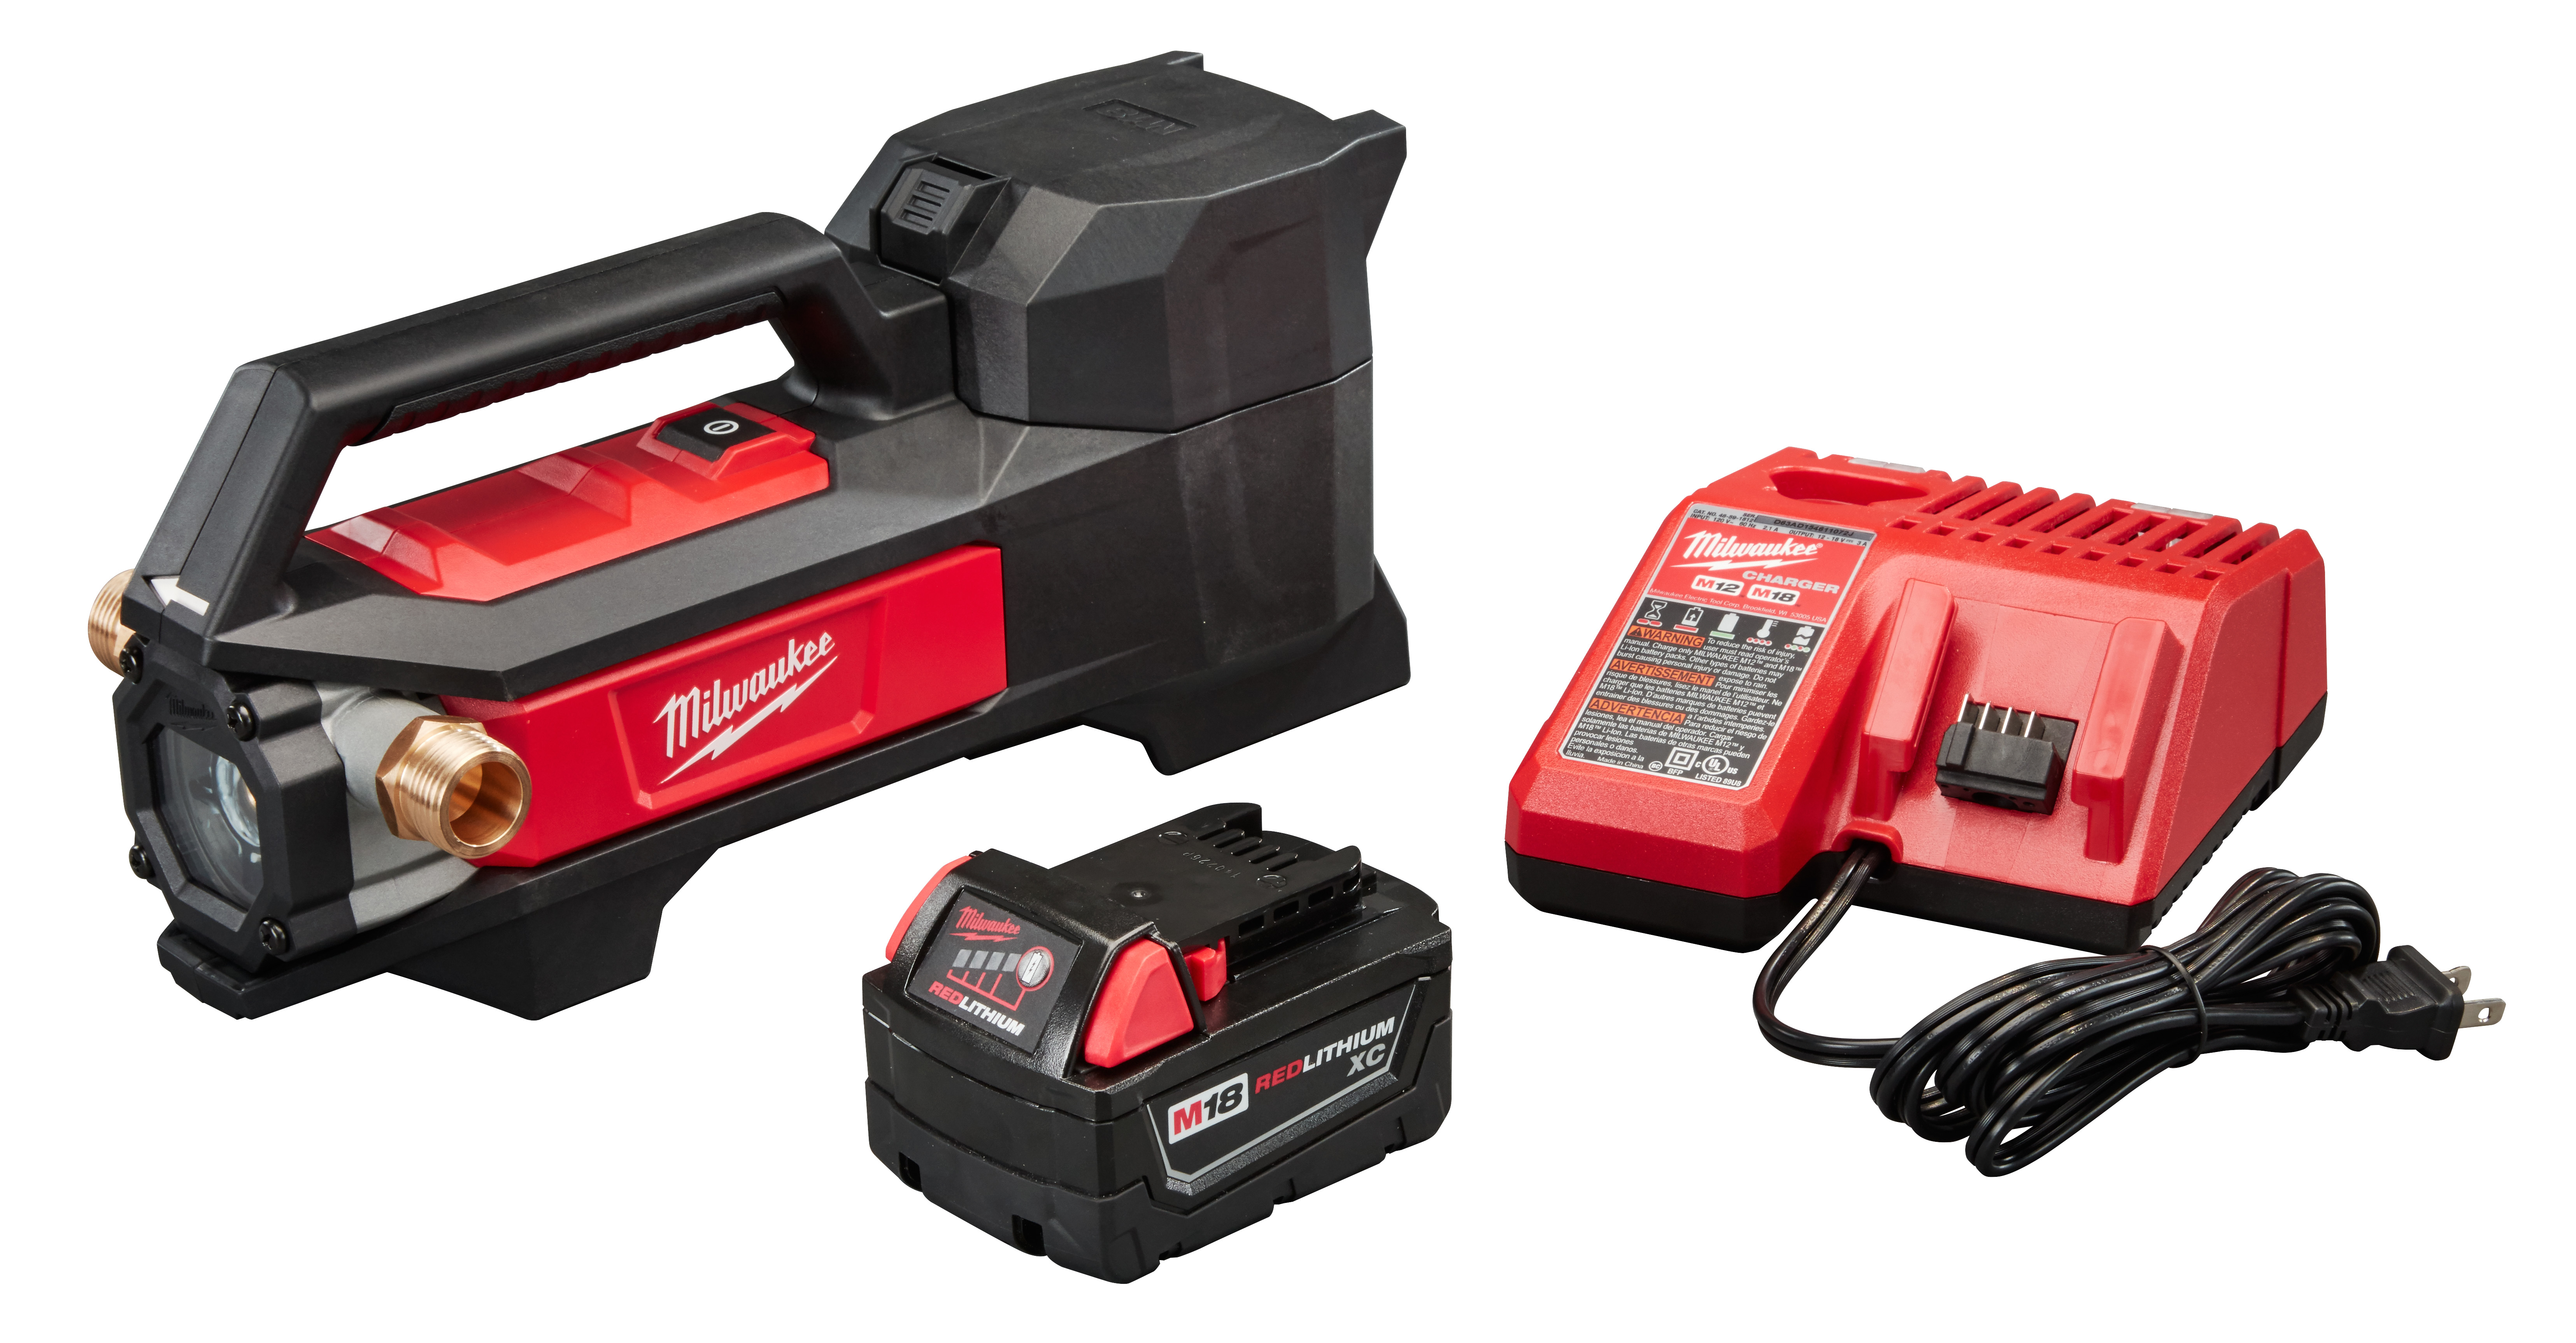 Milwaukee® M18™ 2771-21 Cordless Transfer Pump Kit, 480 gph Flow Rate, 3/4 in Inlet x 3/4 in Outlet, 0.25 hp, Nitrile Rubber/Reinforced Plastic, Import